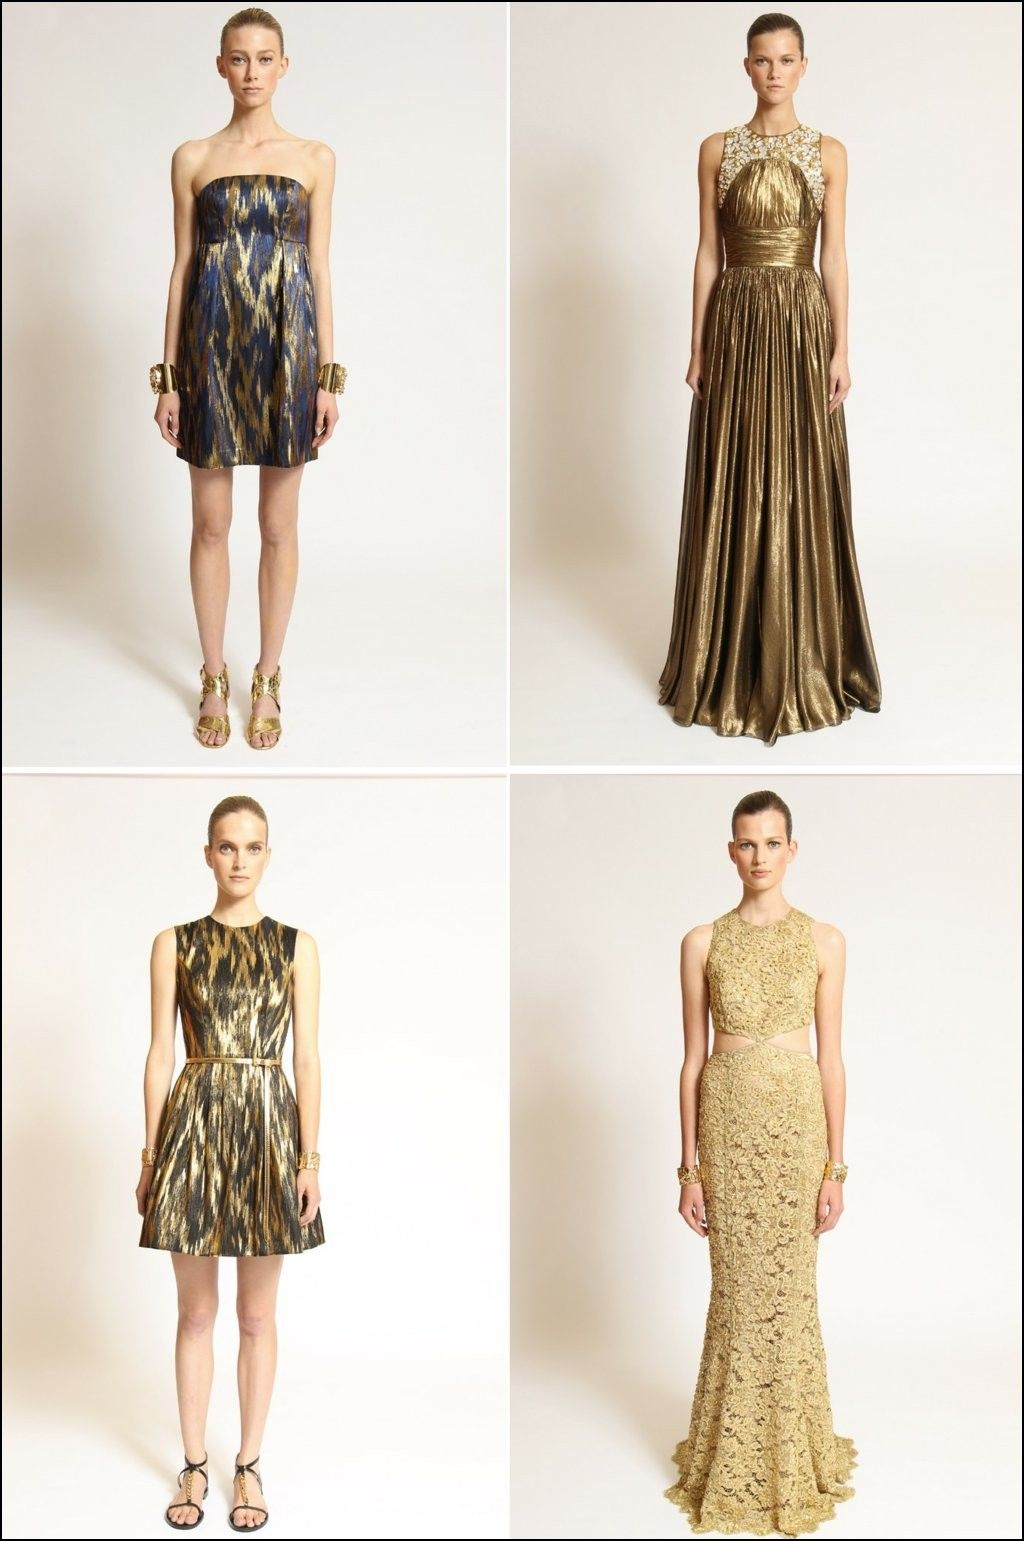 Michael kors bridesmaid dresses dresses and gowns ideas